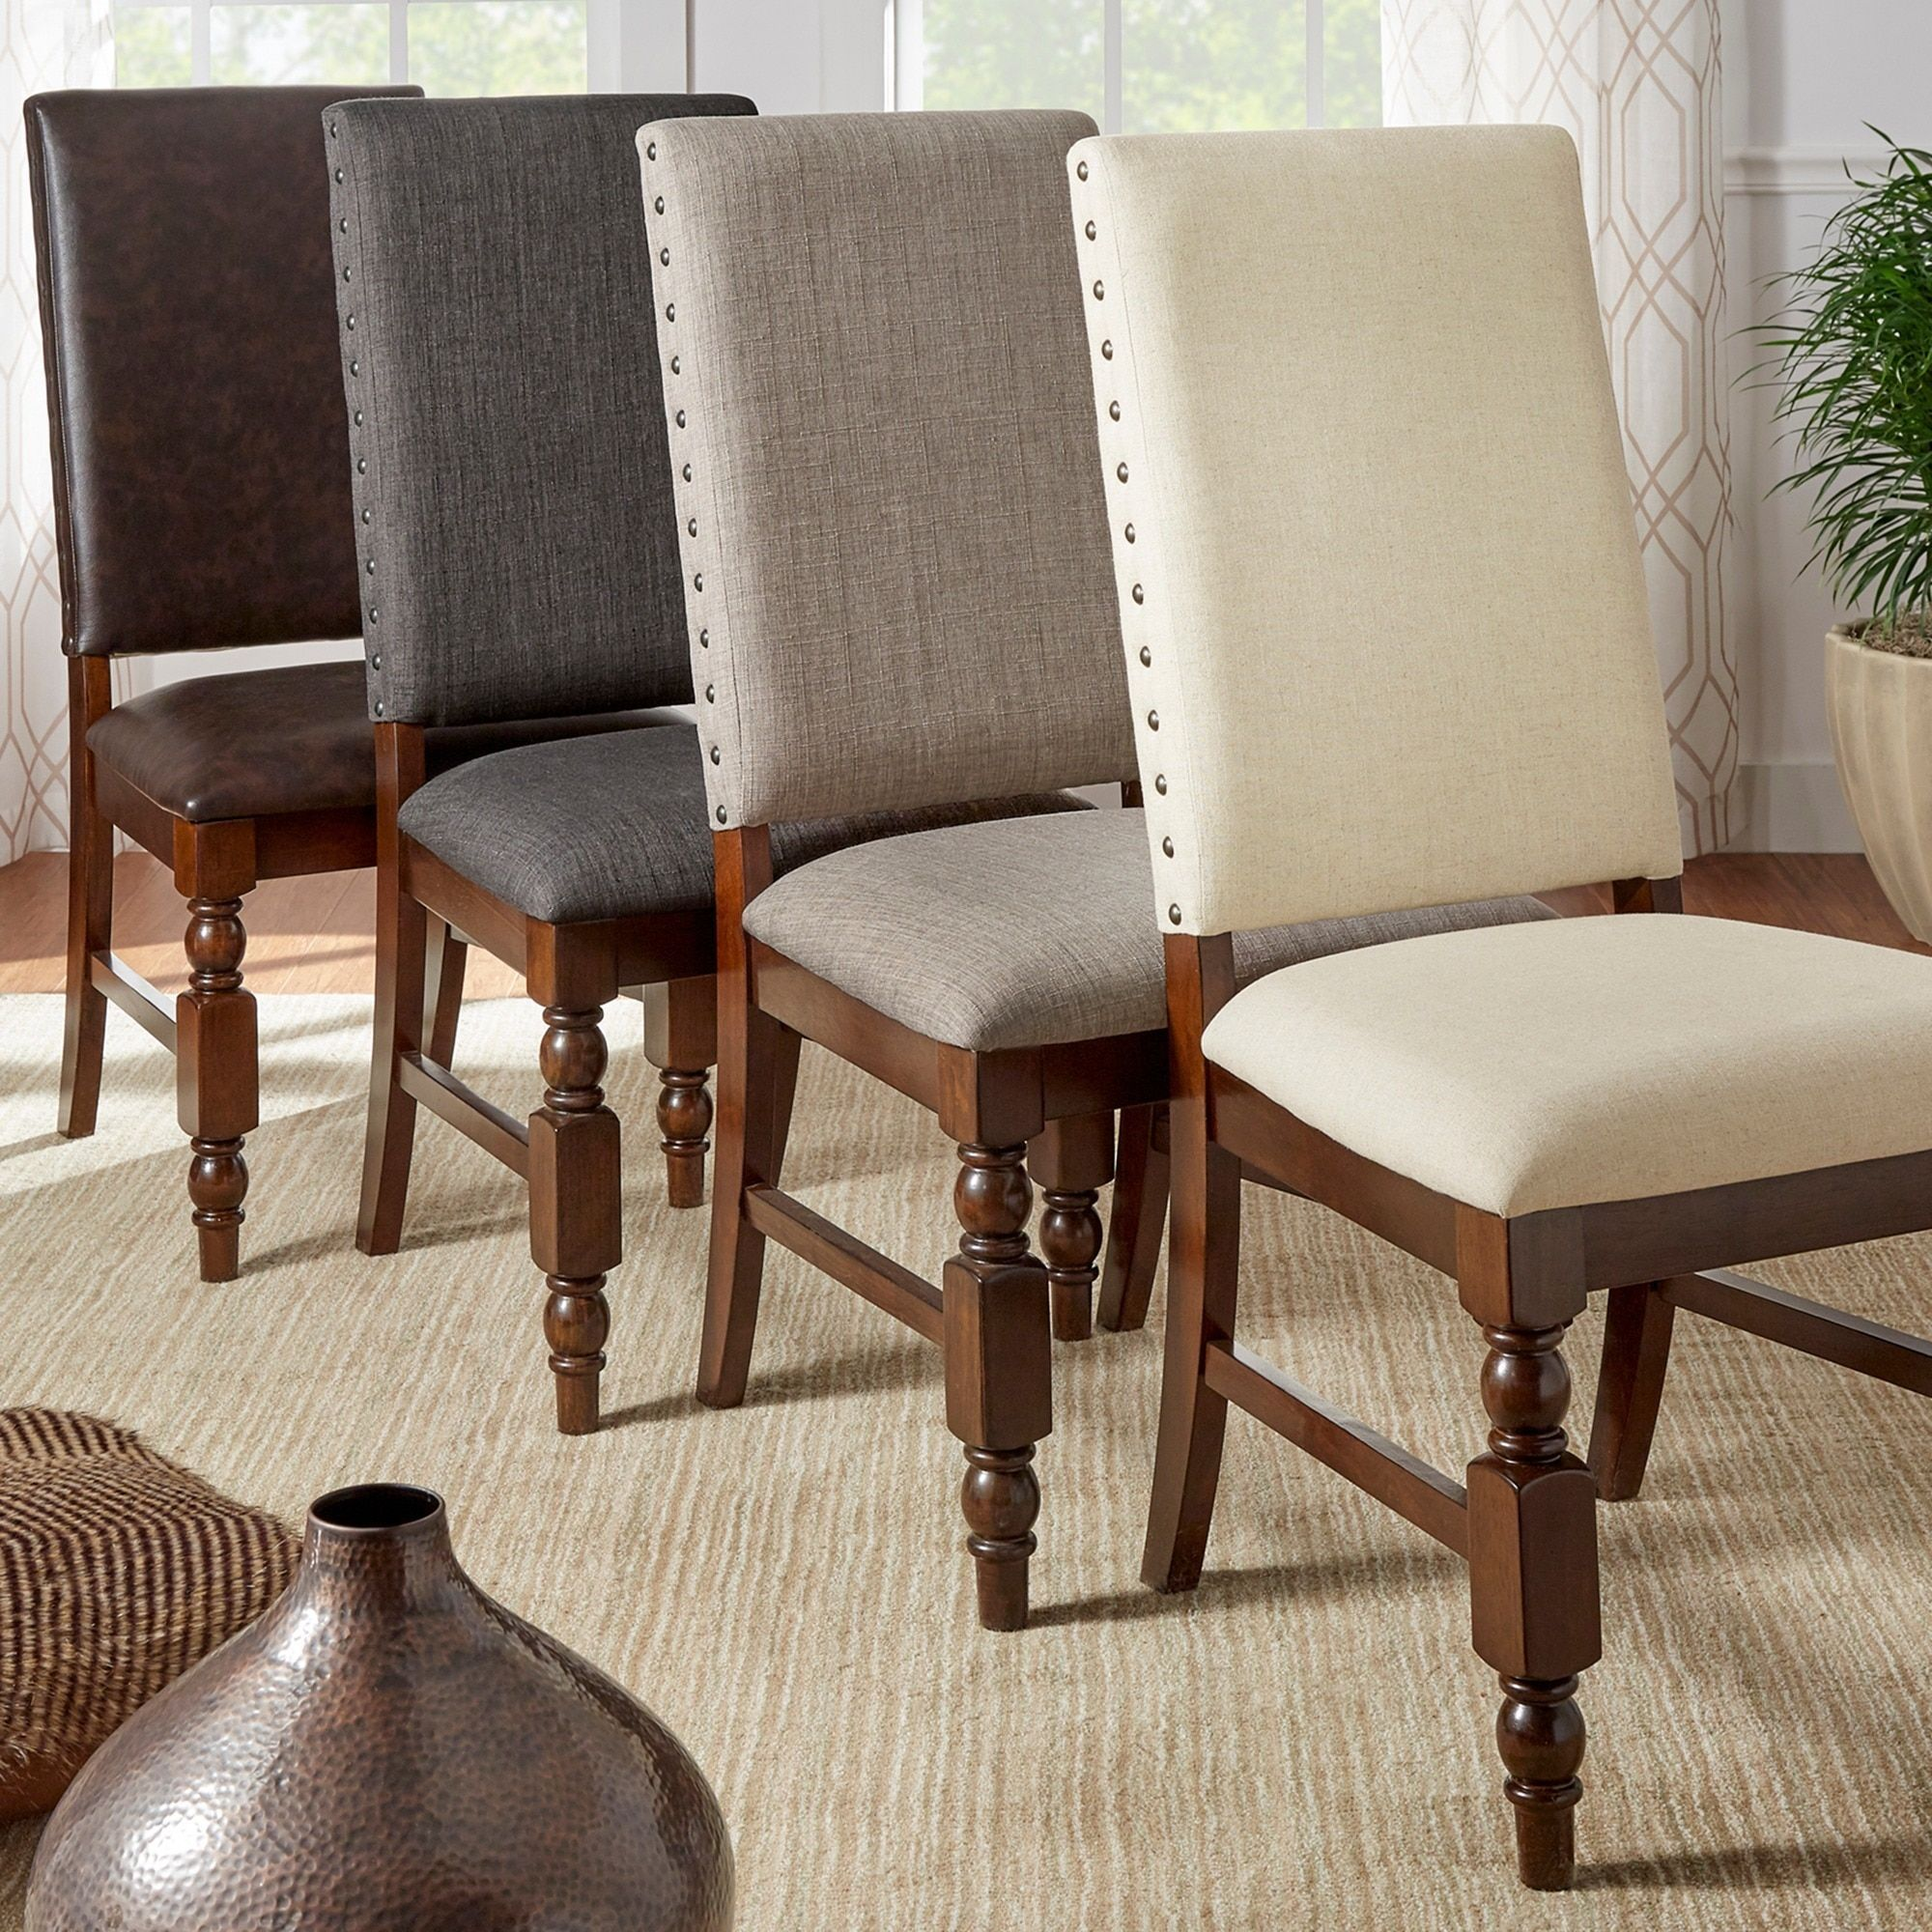 Astonishing Flatiron Nailhead Upholstered Dining Chairs By Tribecca Home Alphanode Cool Chair Designs And Ideas Alphanodeonline